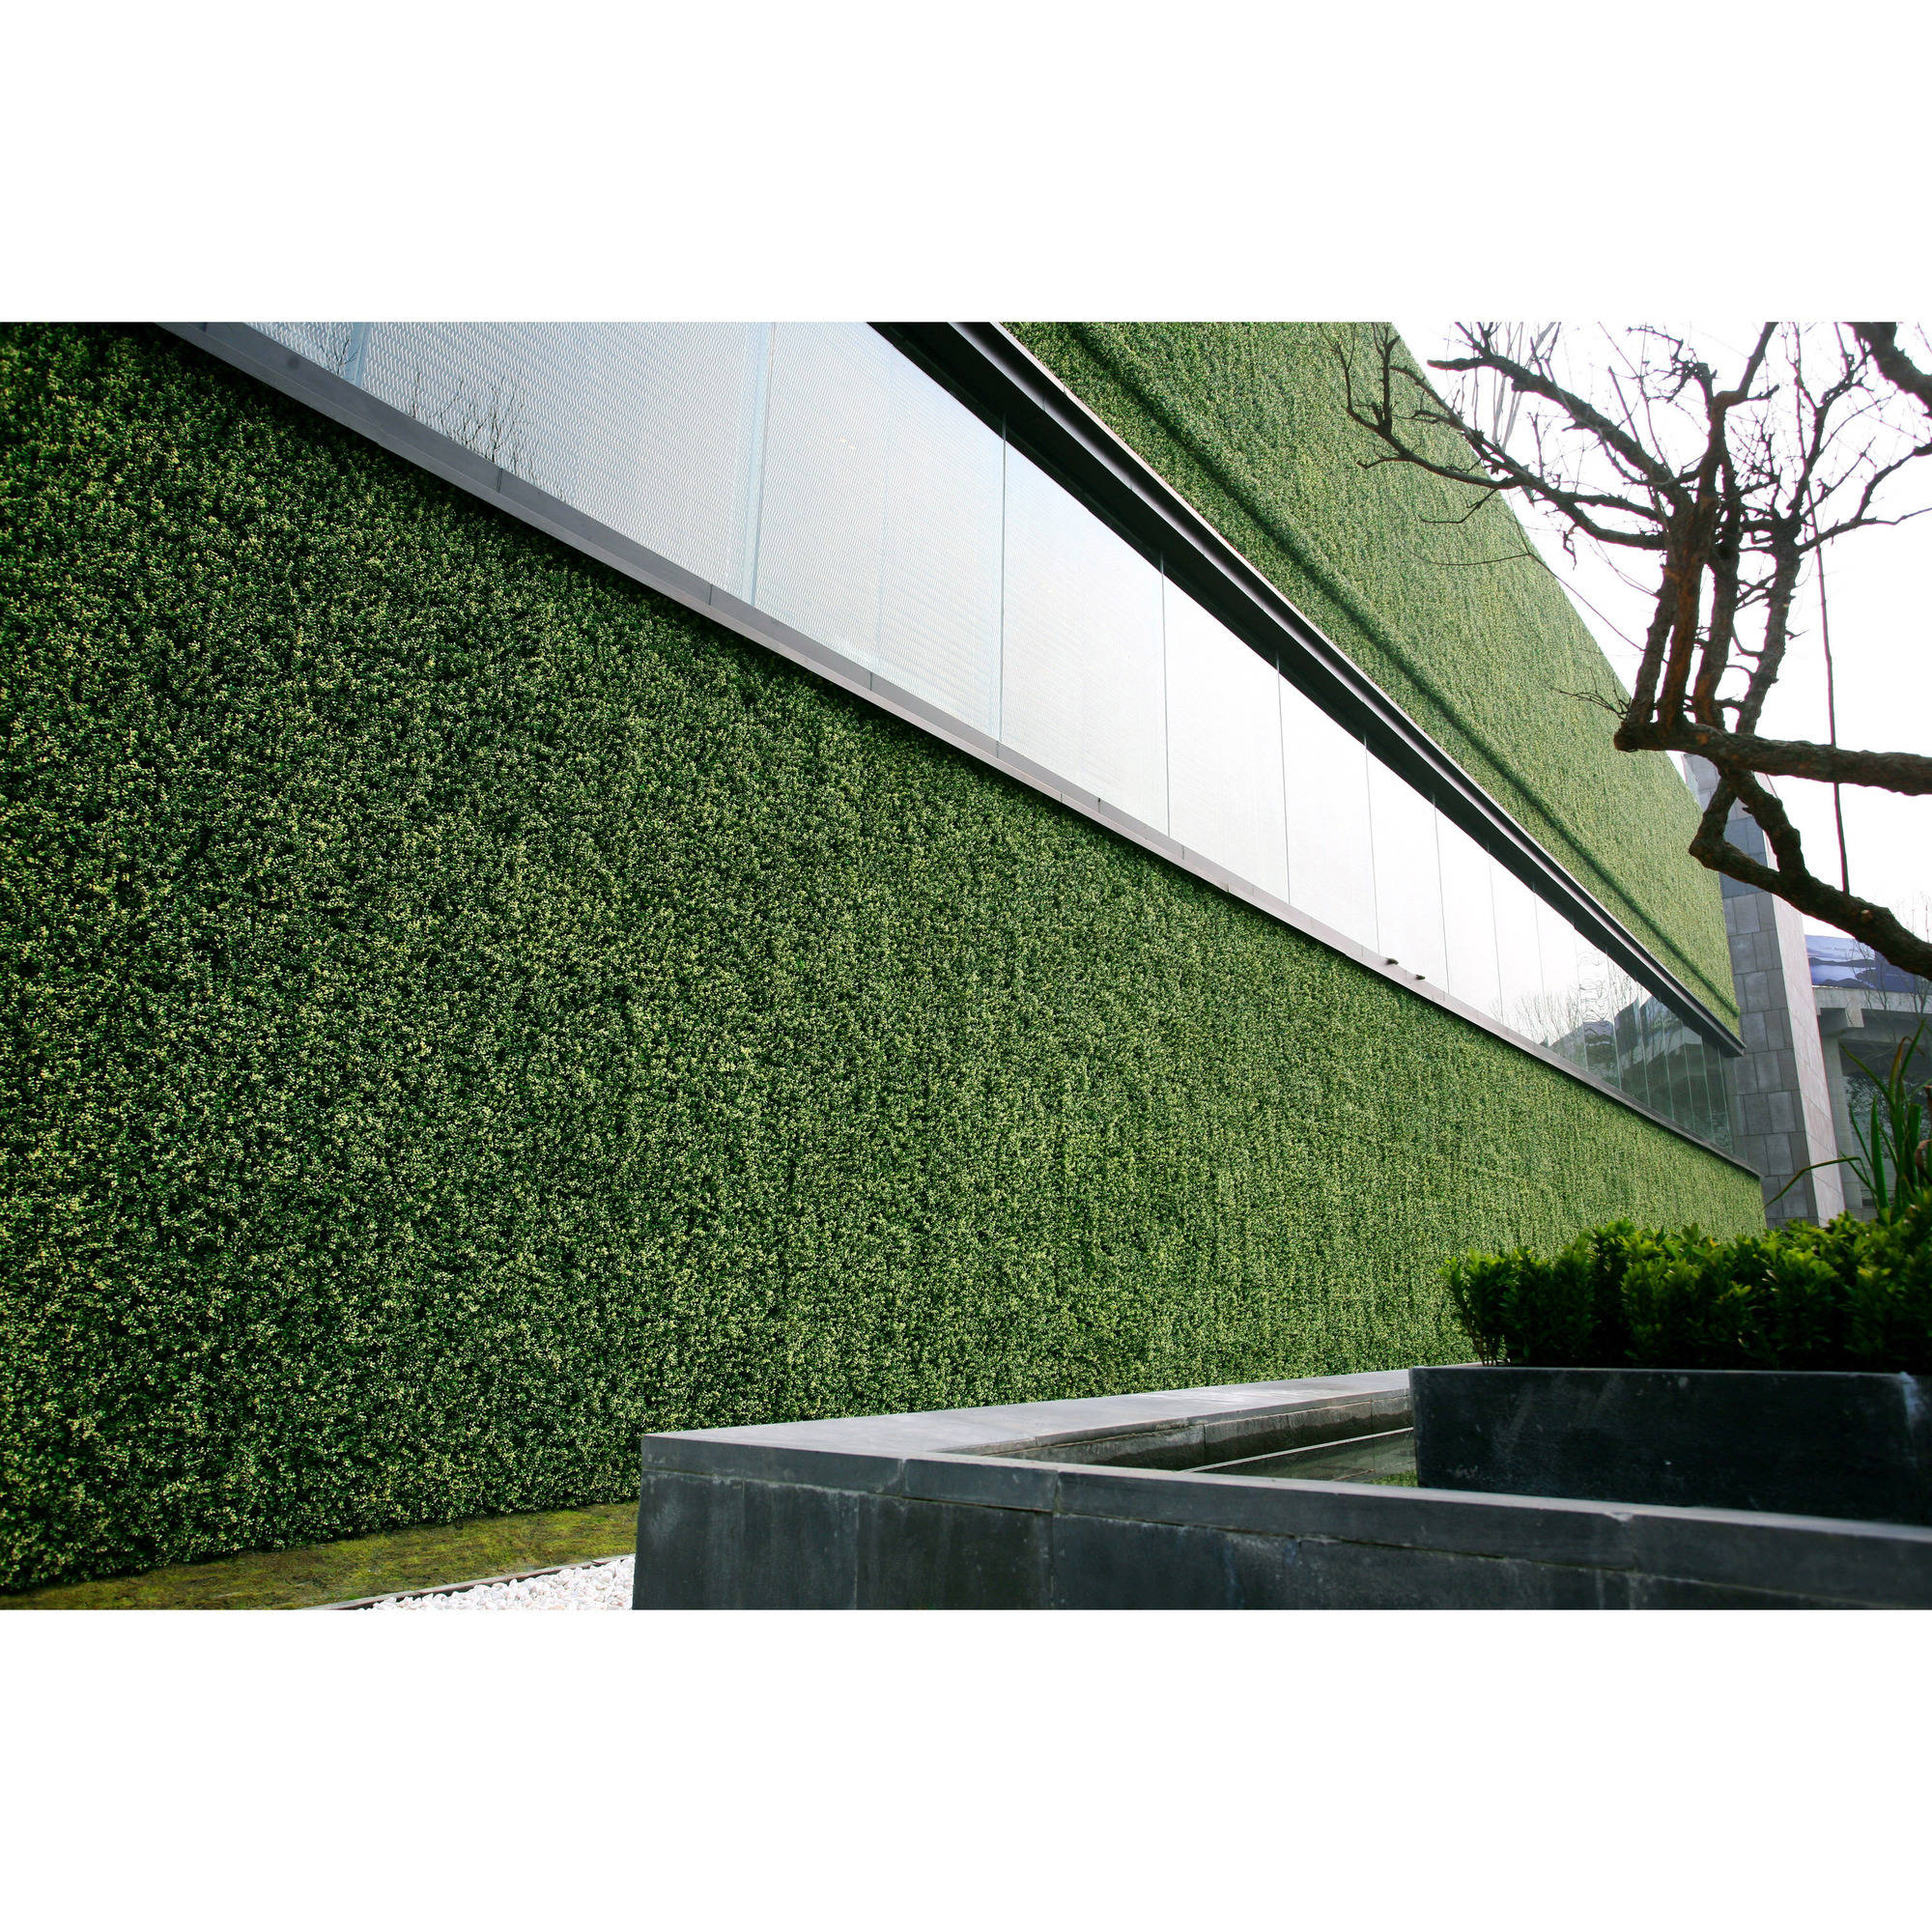 Greensmart Decor Artificial Moss Wall Panels, Set of 4